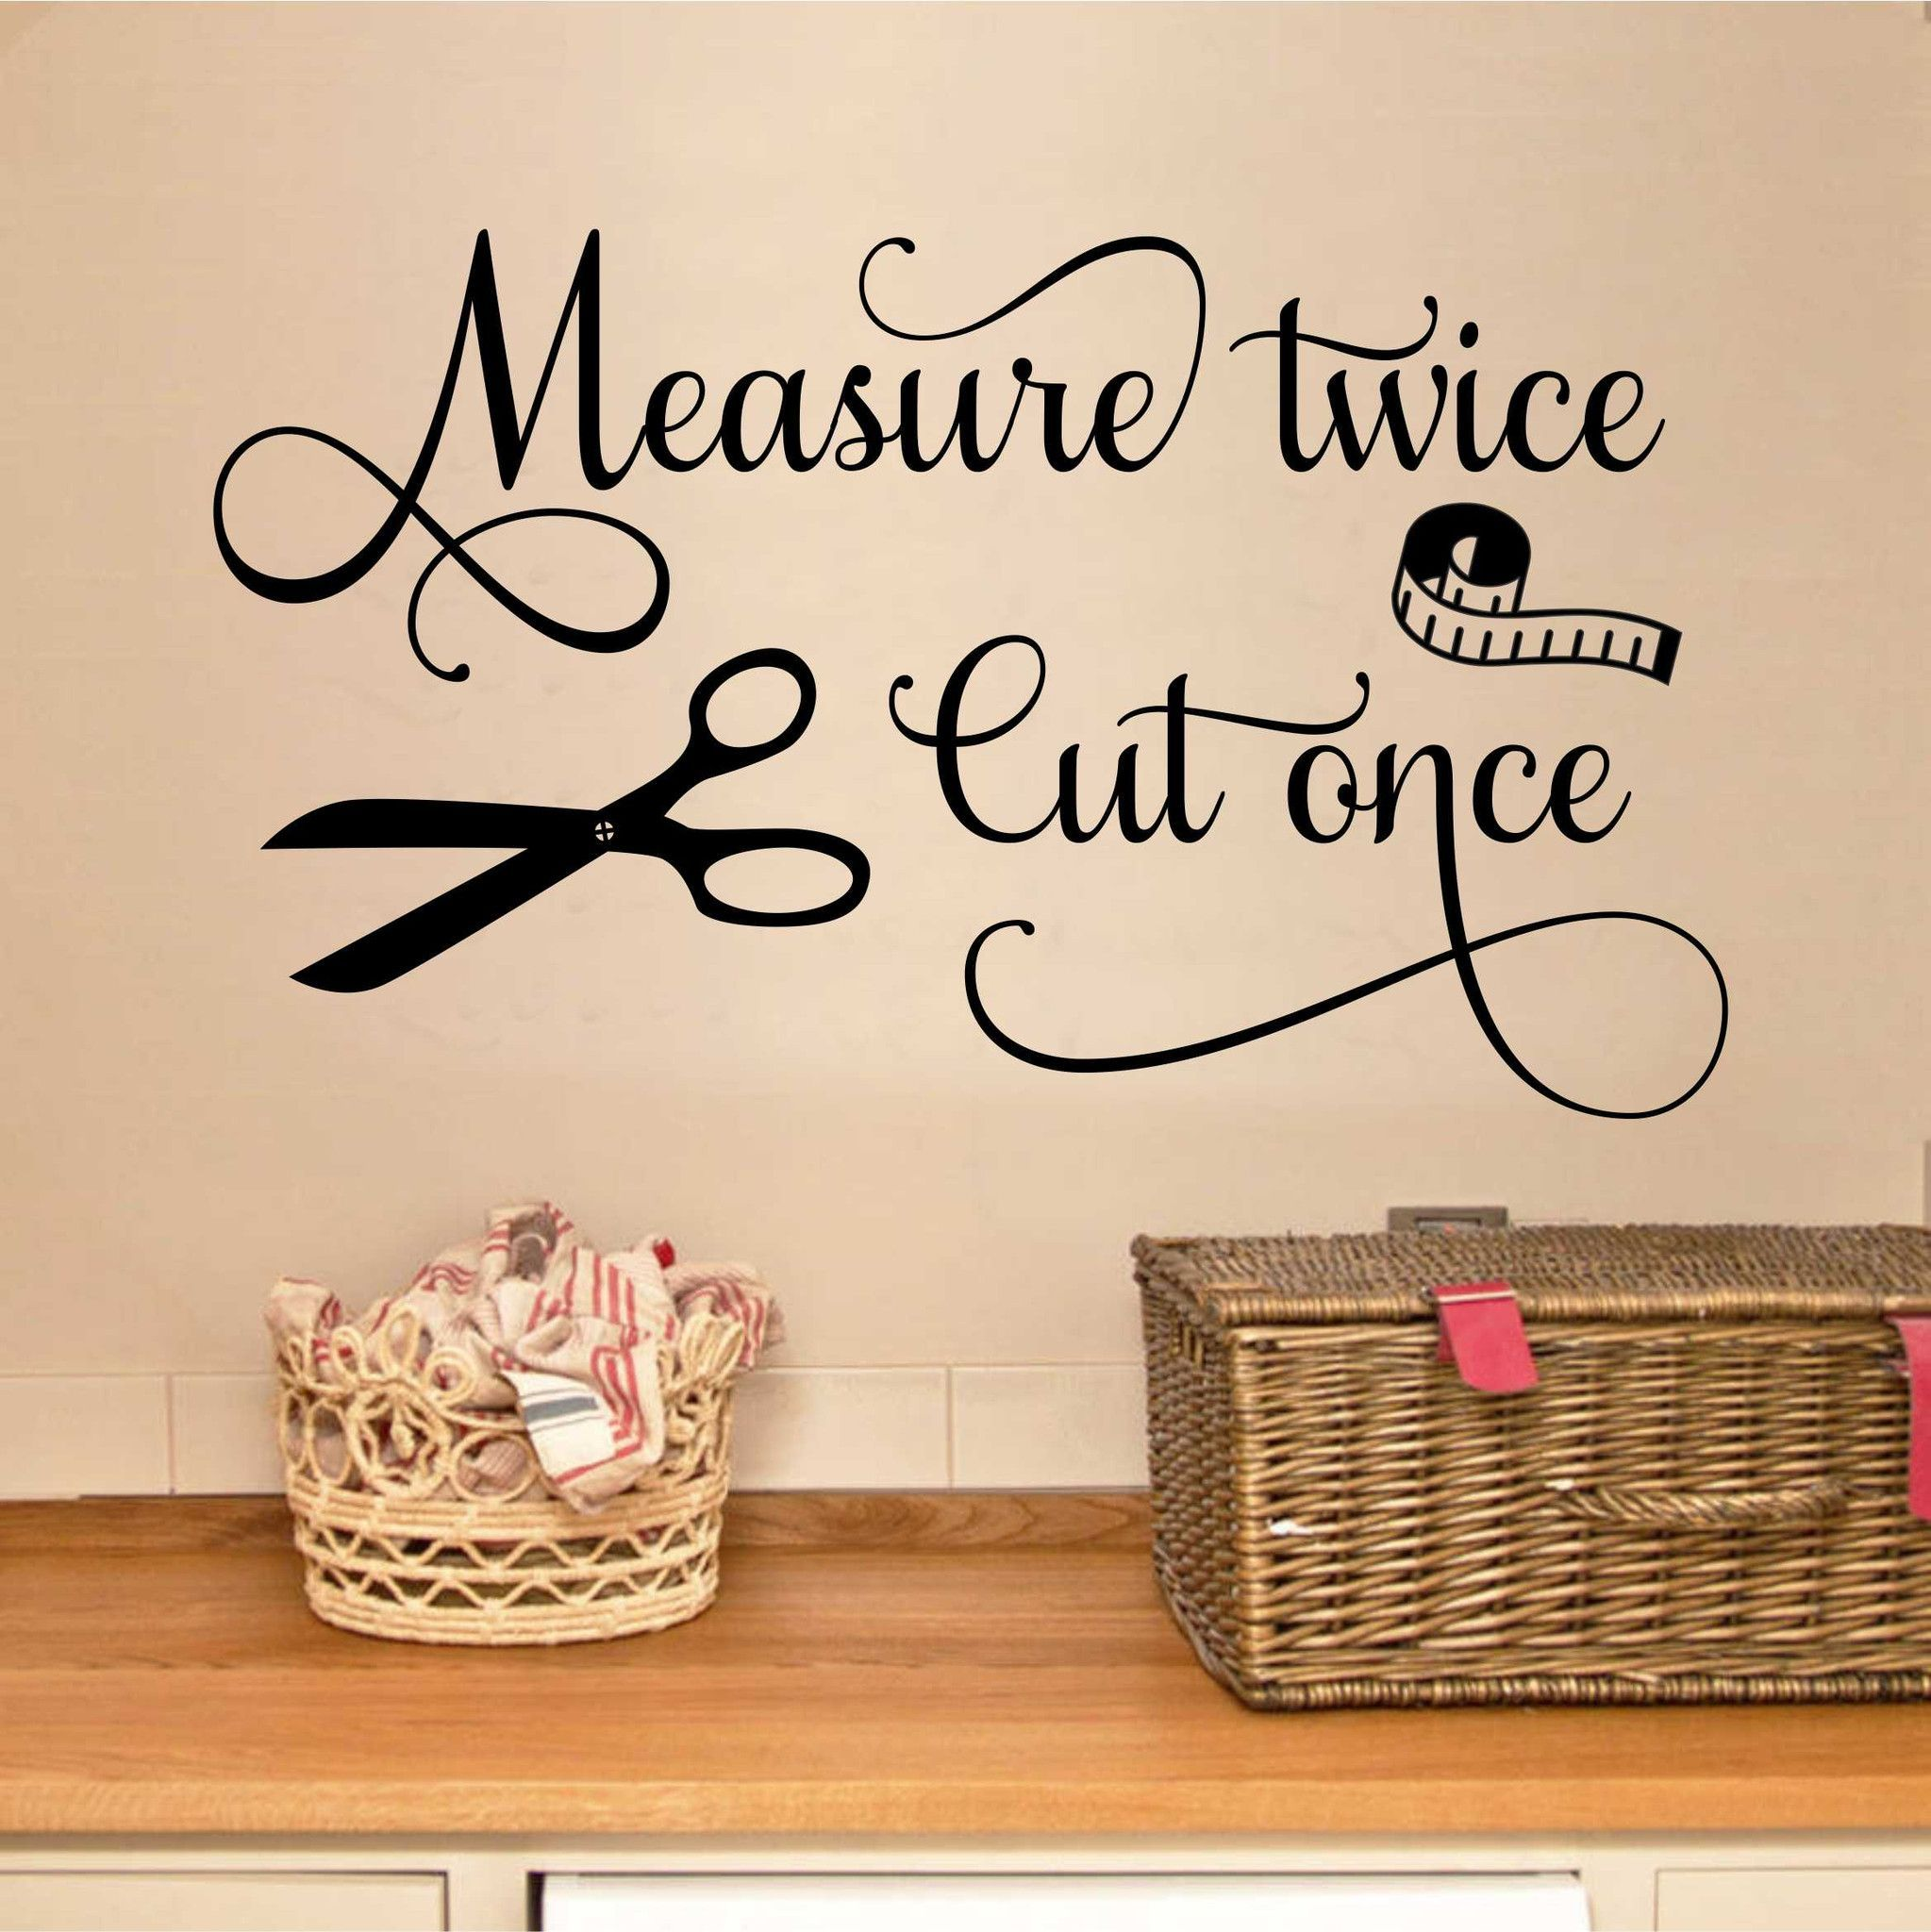 Measure twice seamstress quote sewing decal vinyl wall lettering